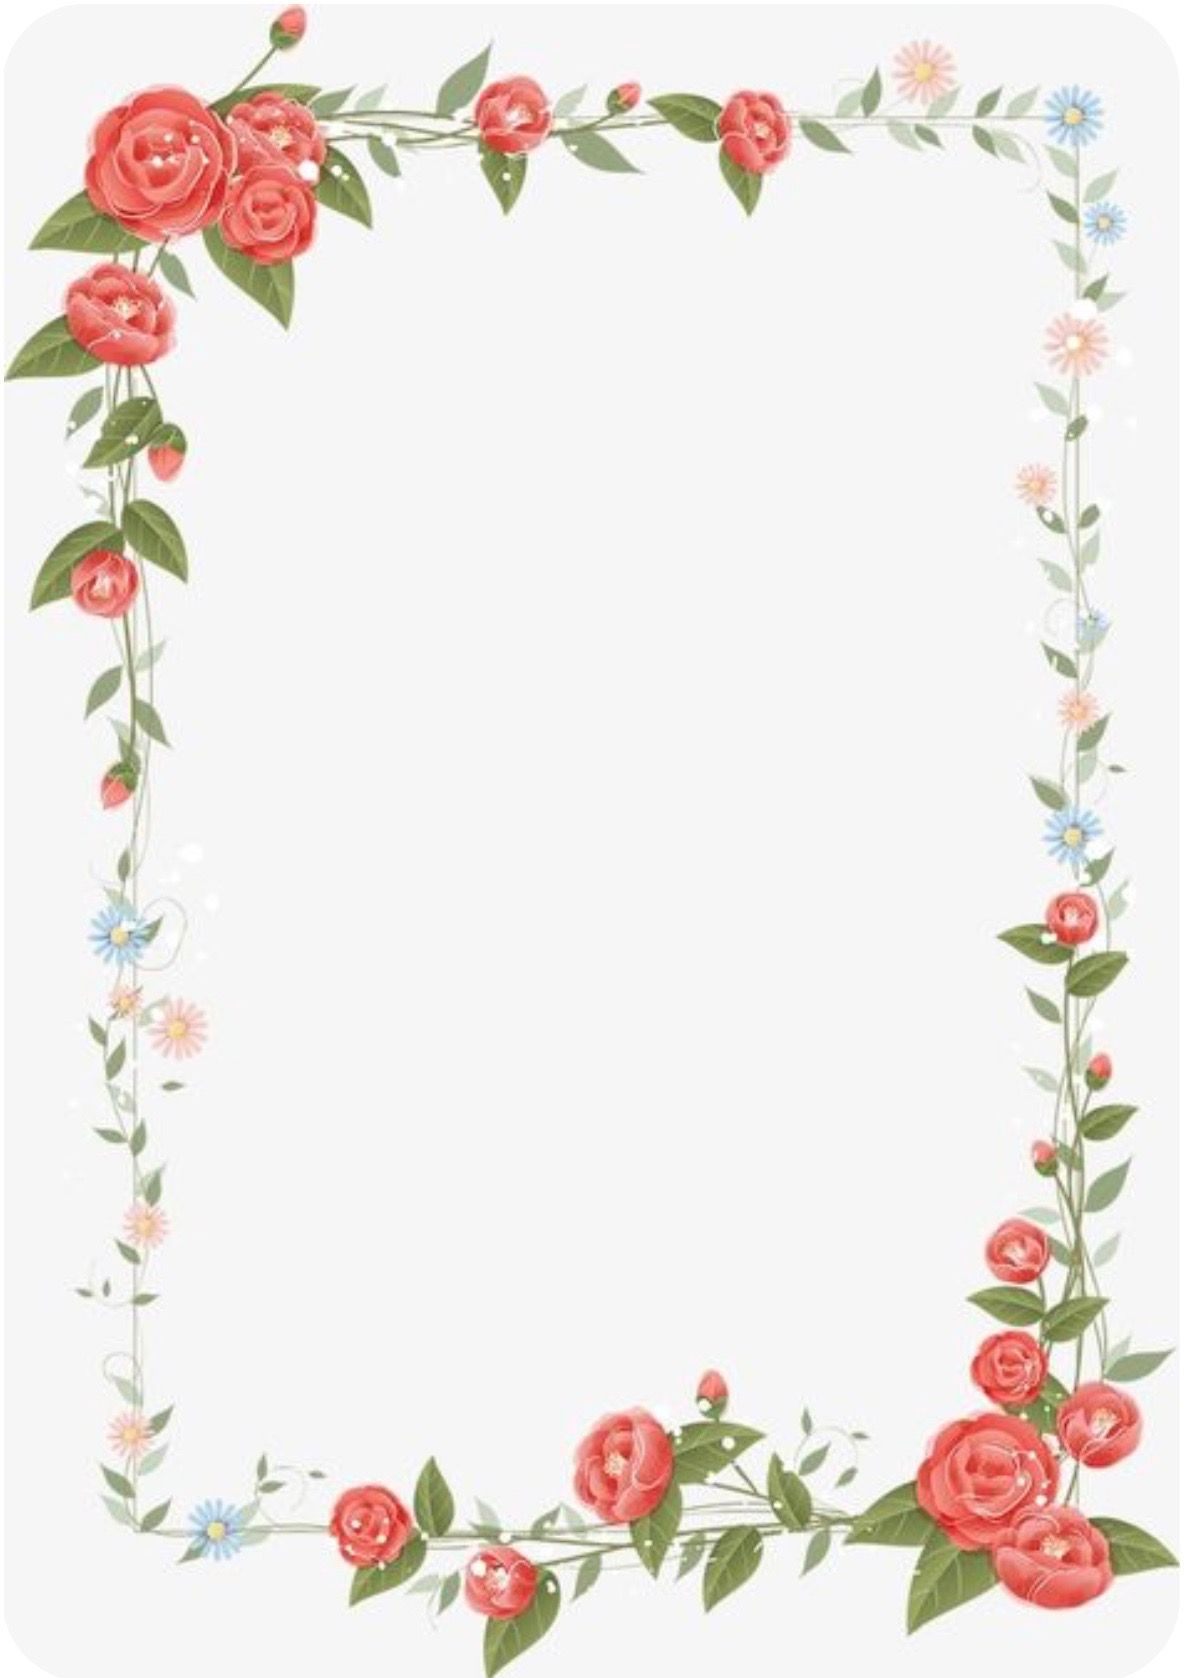 Red Rose Border Floral Border Design Flower Border Png Frame Border Design